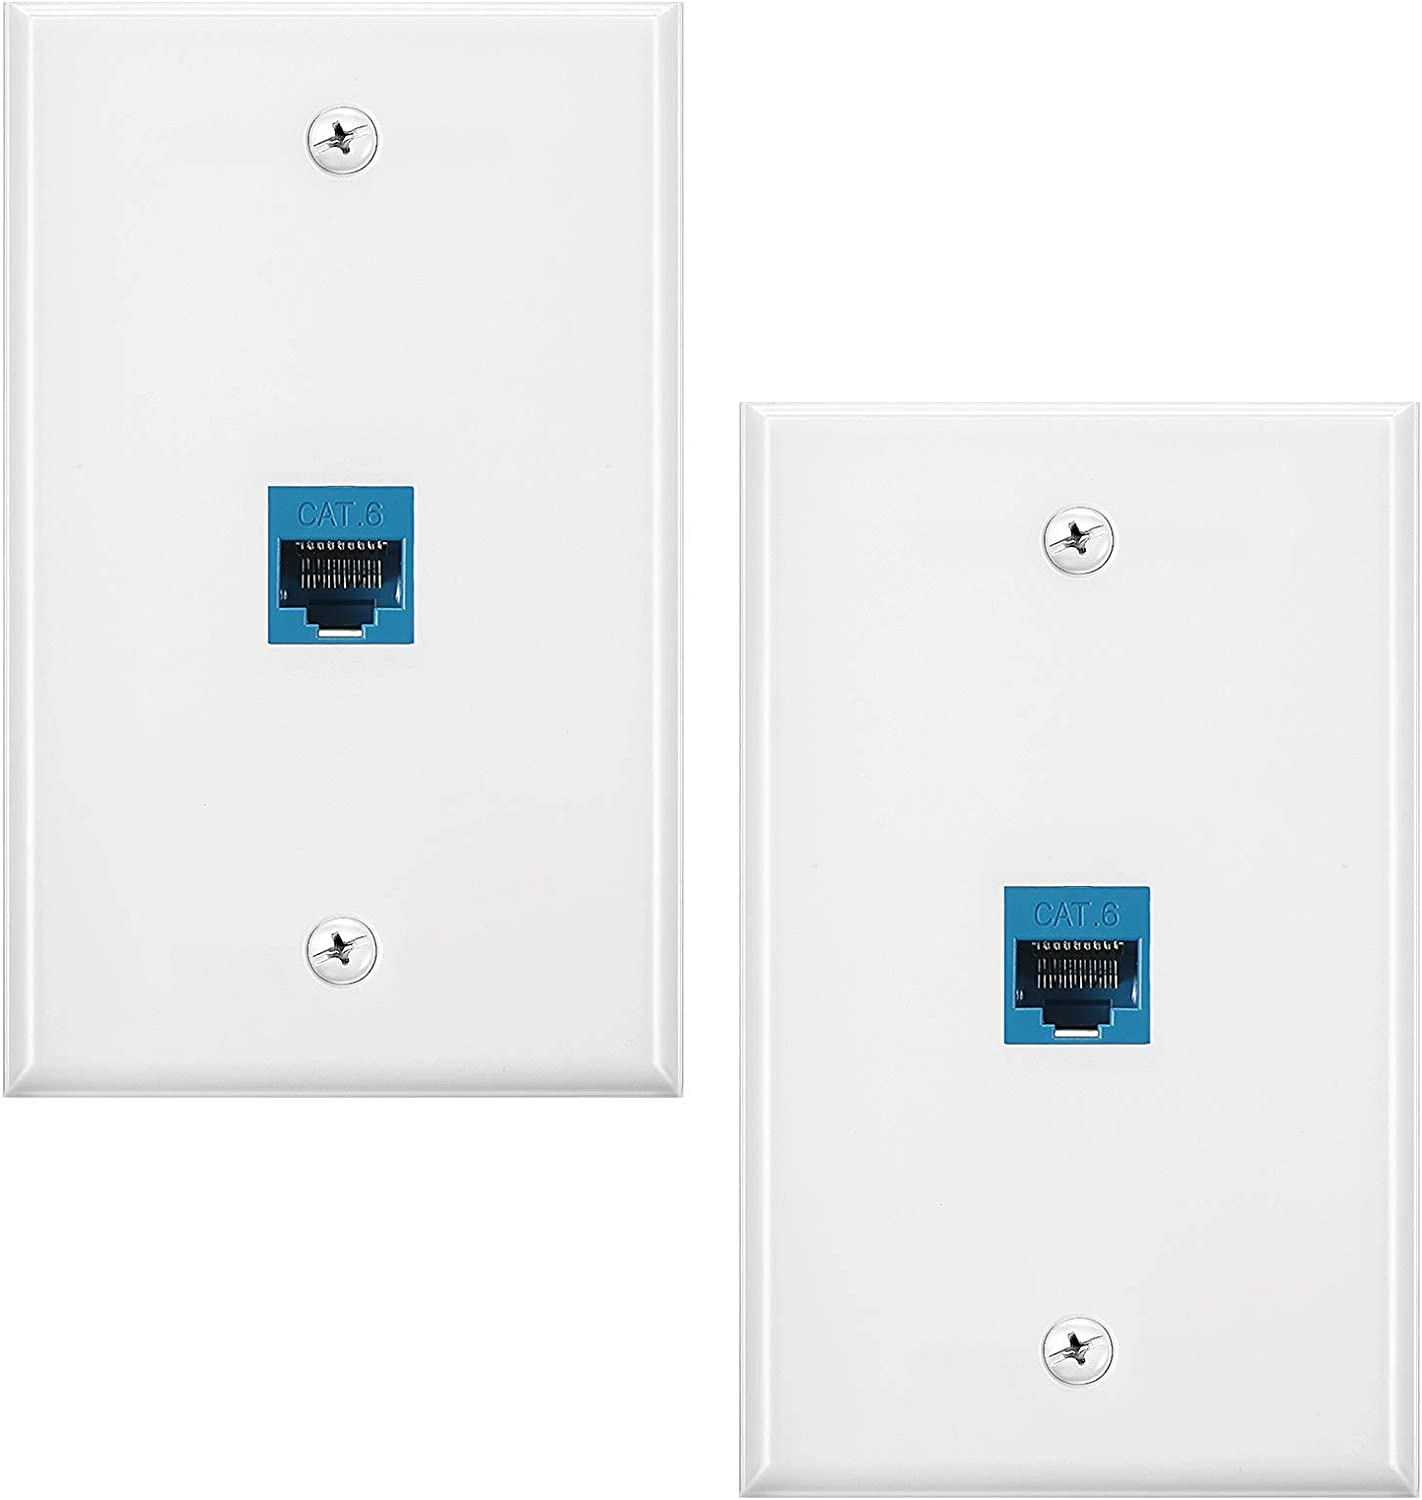 2 At the price of surprise Pack Ethernet Wall Plate RJ45 Inli Seasonal Wrap Introduction Cat6 to Jack Female